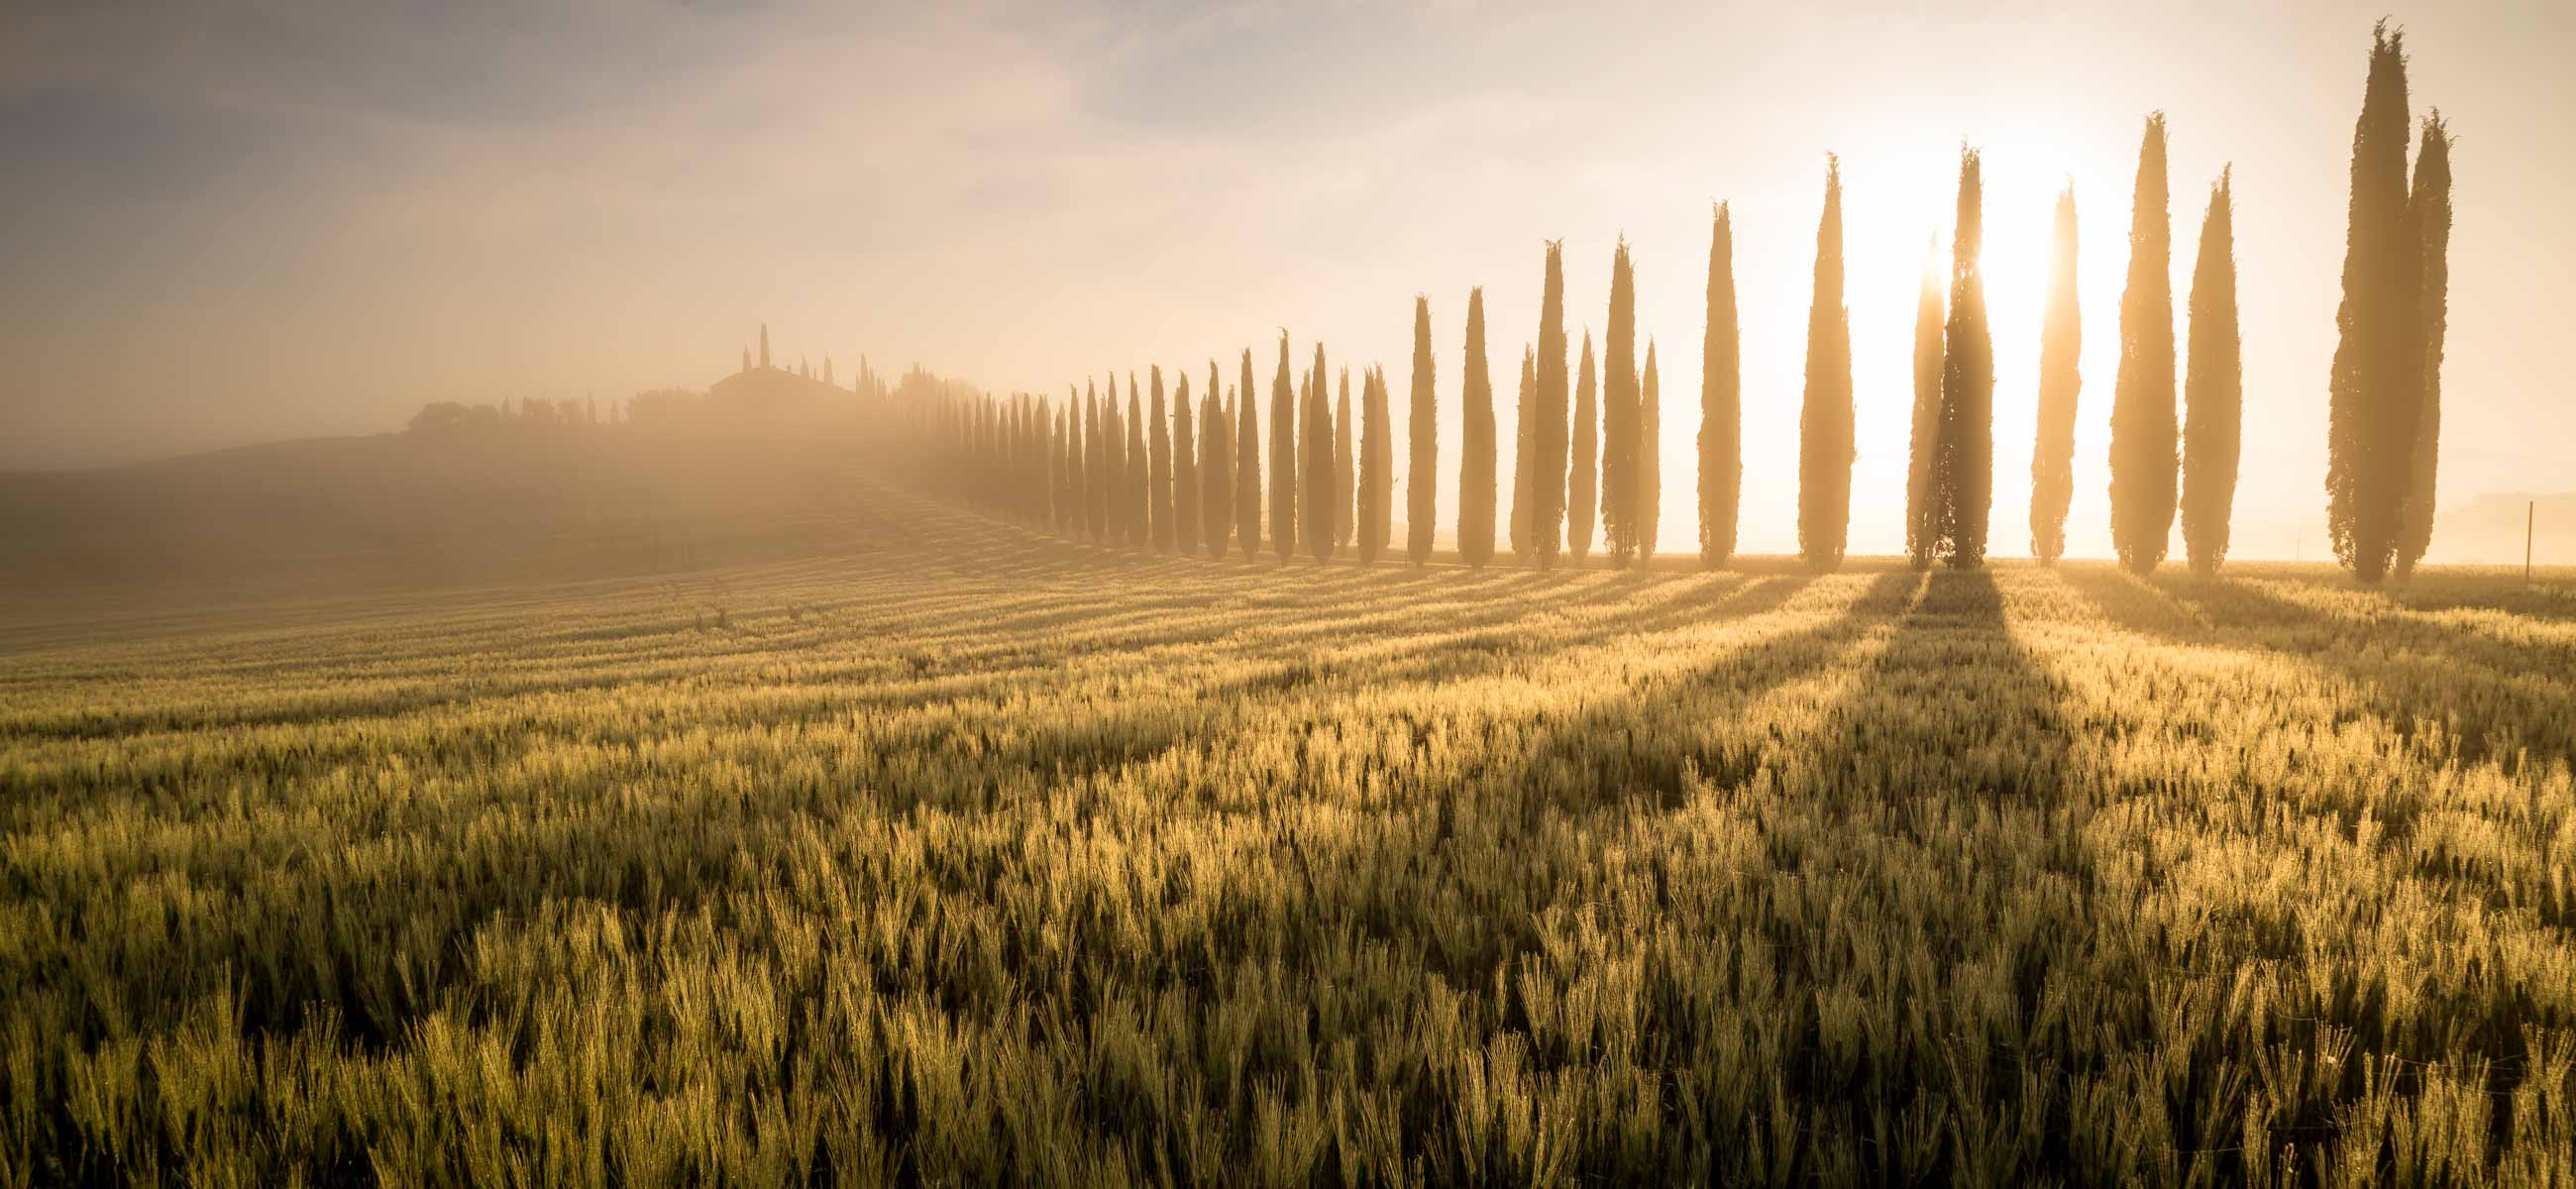 Cypress trees in the mist at sunrise in a wheat field at sunrise in tuscany